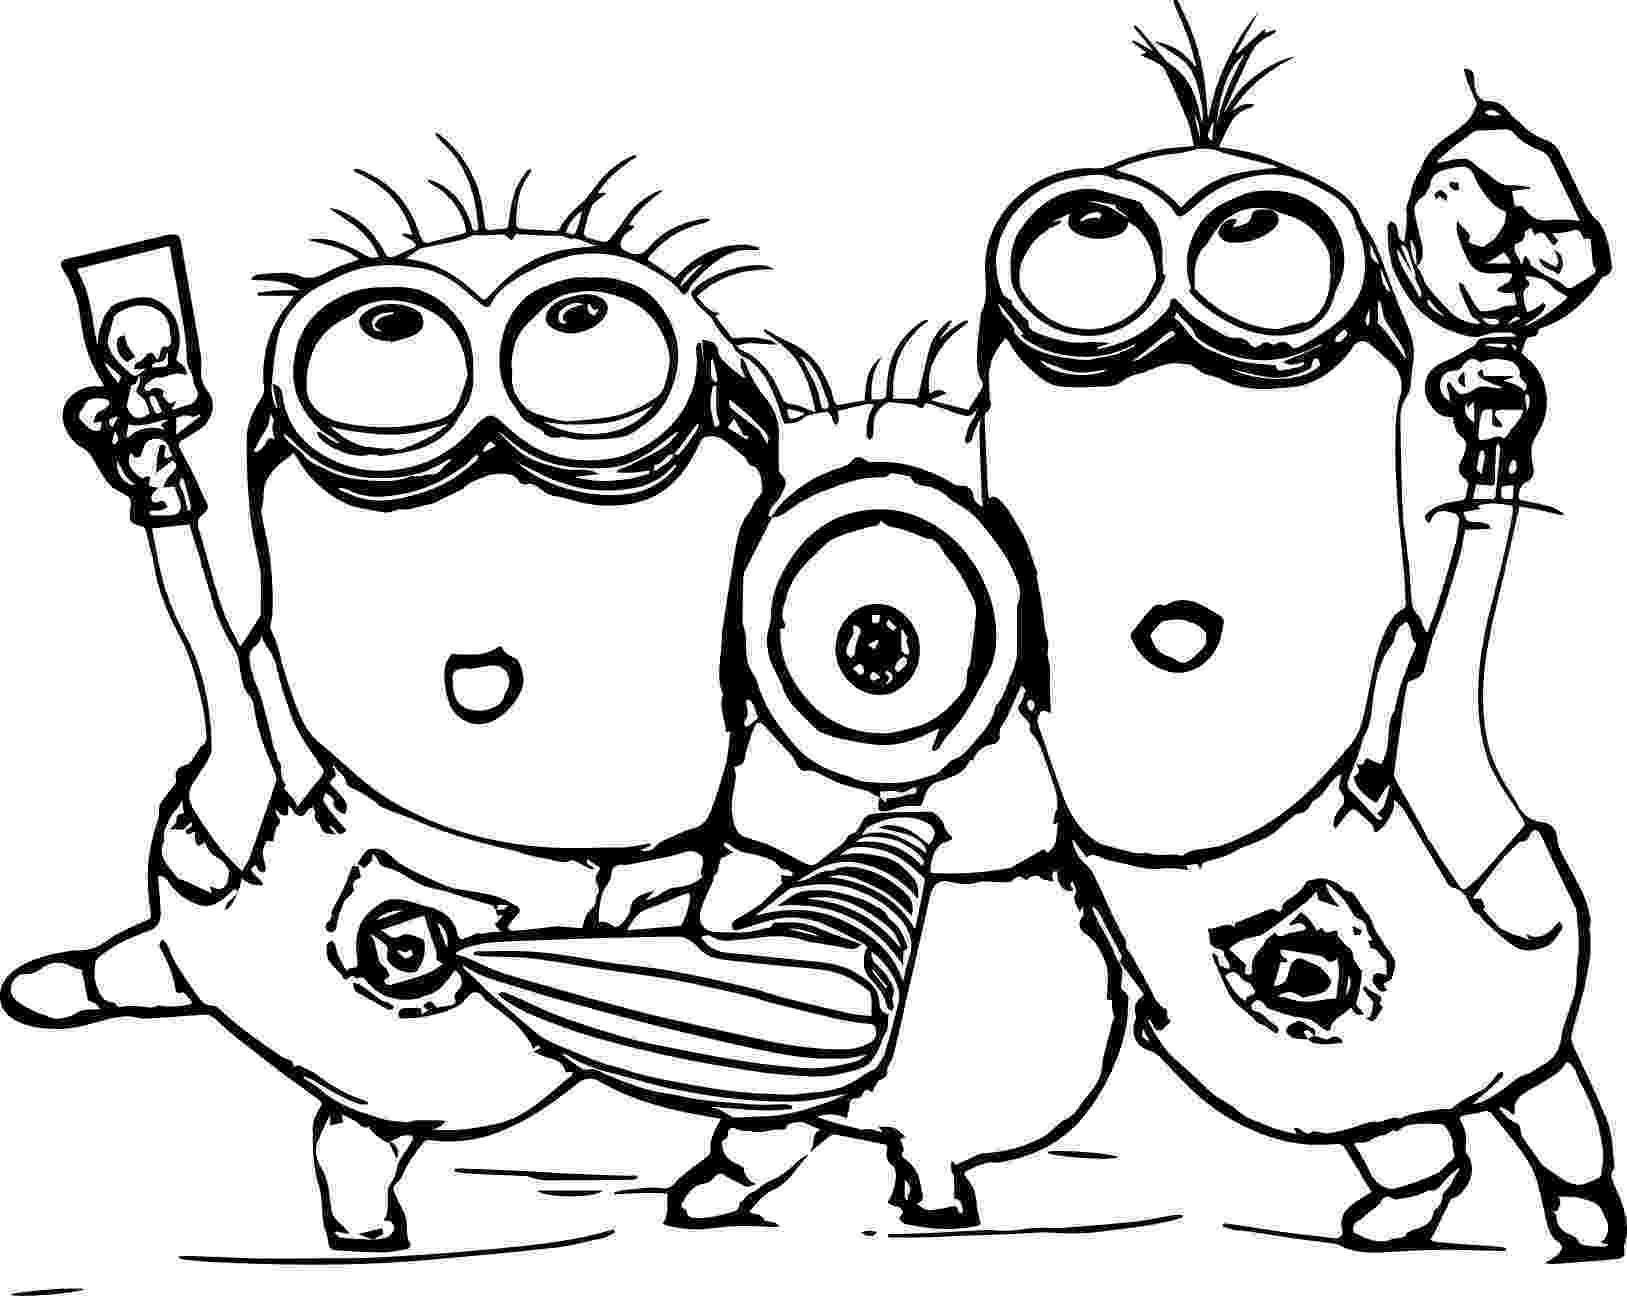 pictures of minions to color minion coloring pages best coloring pages for kids pictures minions of color to